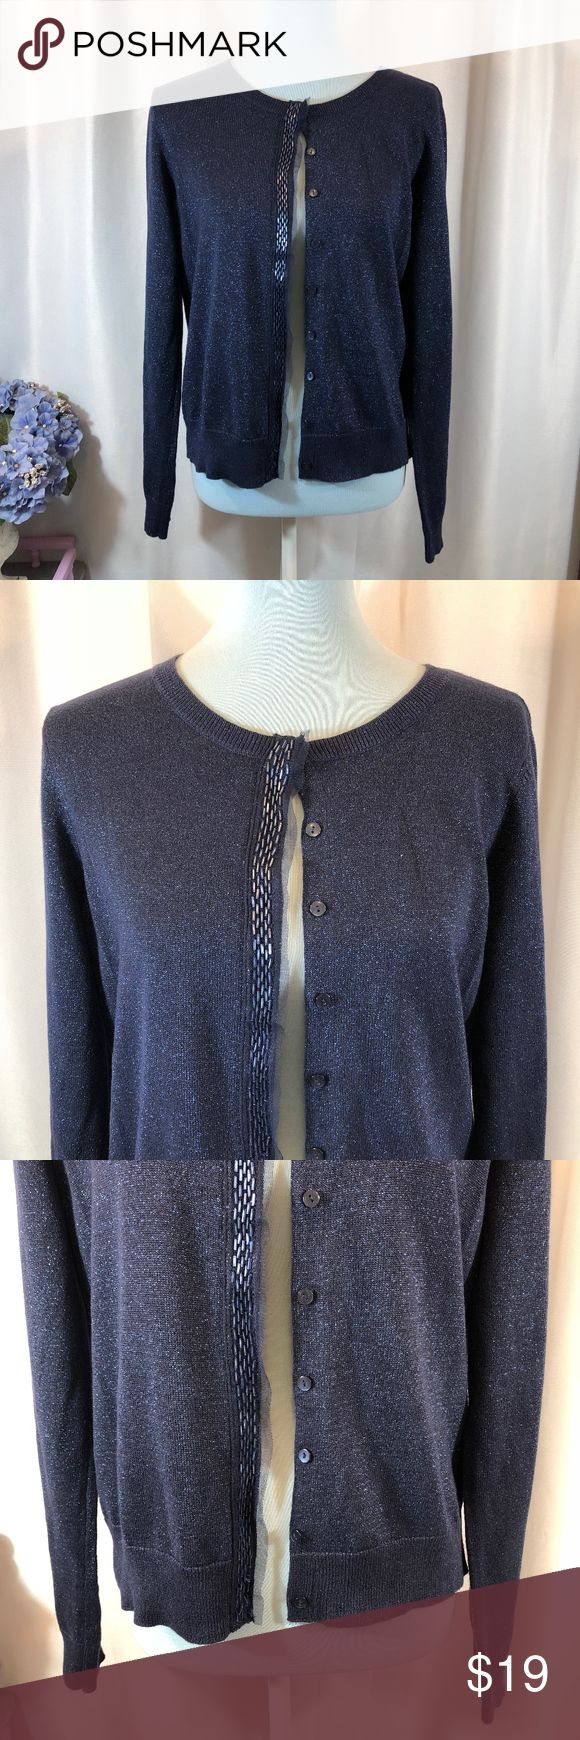 """Charter Club Blue Metallic Cardigan Sweater, L Brand: Charter Club Size: L Material: 85% Cotton, 10% Polyester, 5% Metallic  Condition: Pre-owned in good condition with no rips, stains, or tears  Approx. Measurements Bust: 39"""" Length: 23.5"""" Sleeve: 24.5"""" Charter Club Sweaters Cardigans"""